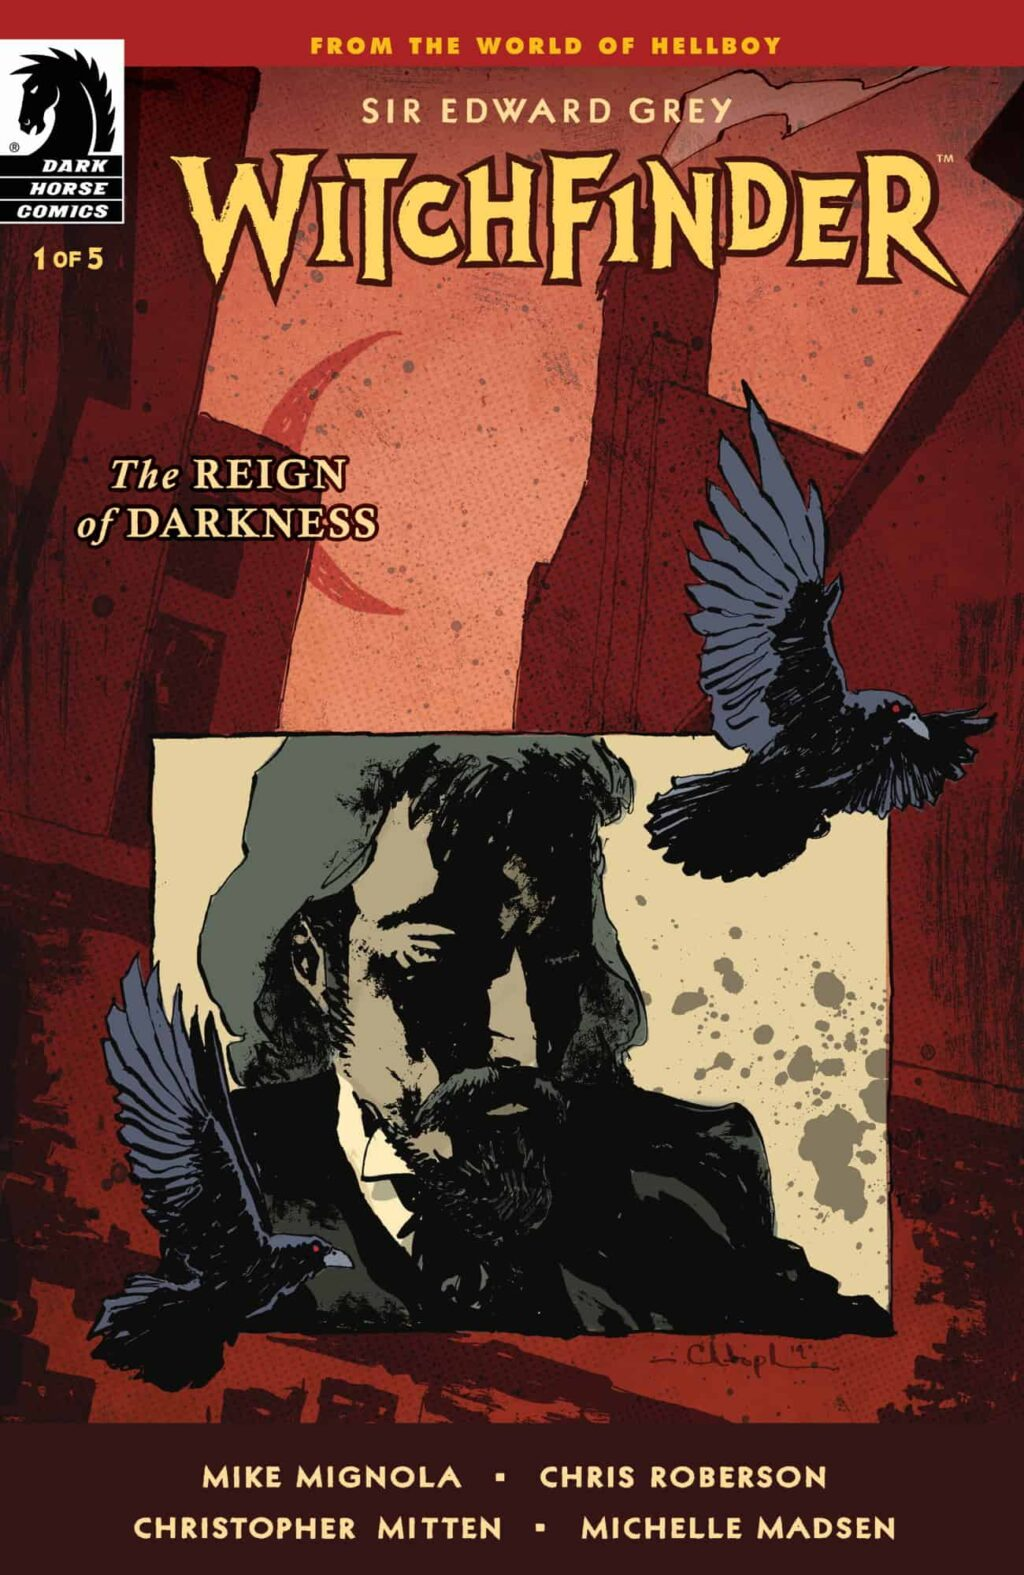 WFROD i1 CVR 4x6 1024x1575 - Exclusive Preview: Jack the Ripper Haunts the Pages of WITCHFINDER: REIGN OF DARKNESS